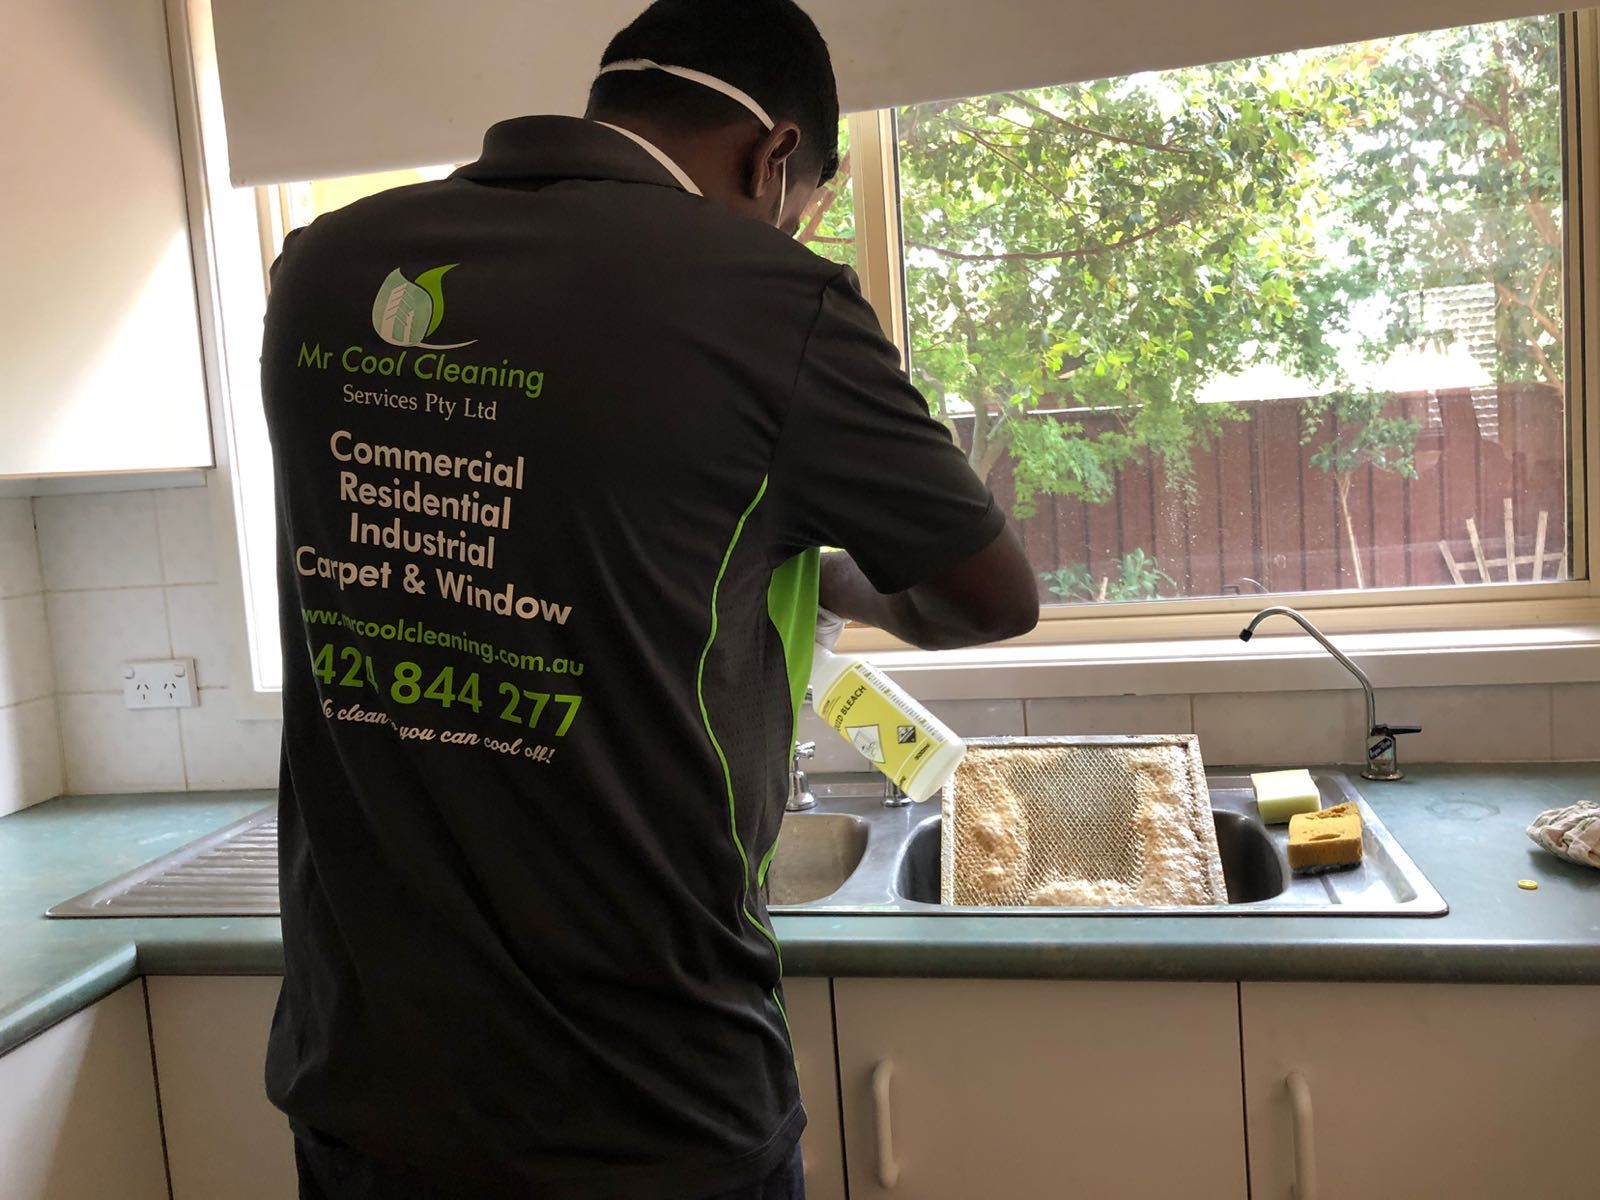 Any Sort Of Cleaning Contact Mrcoolcleaning Call Us 61 0424 844 277 Know More About Us Http Mrcoolcleaning How To Clean Carpet Cleaning Clean Office